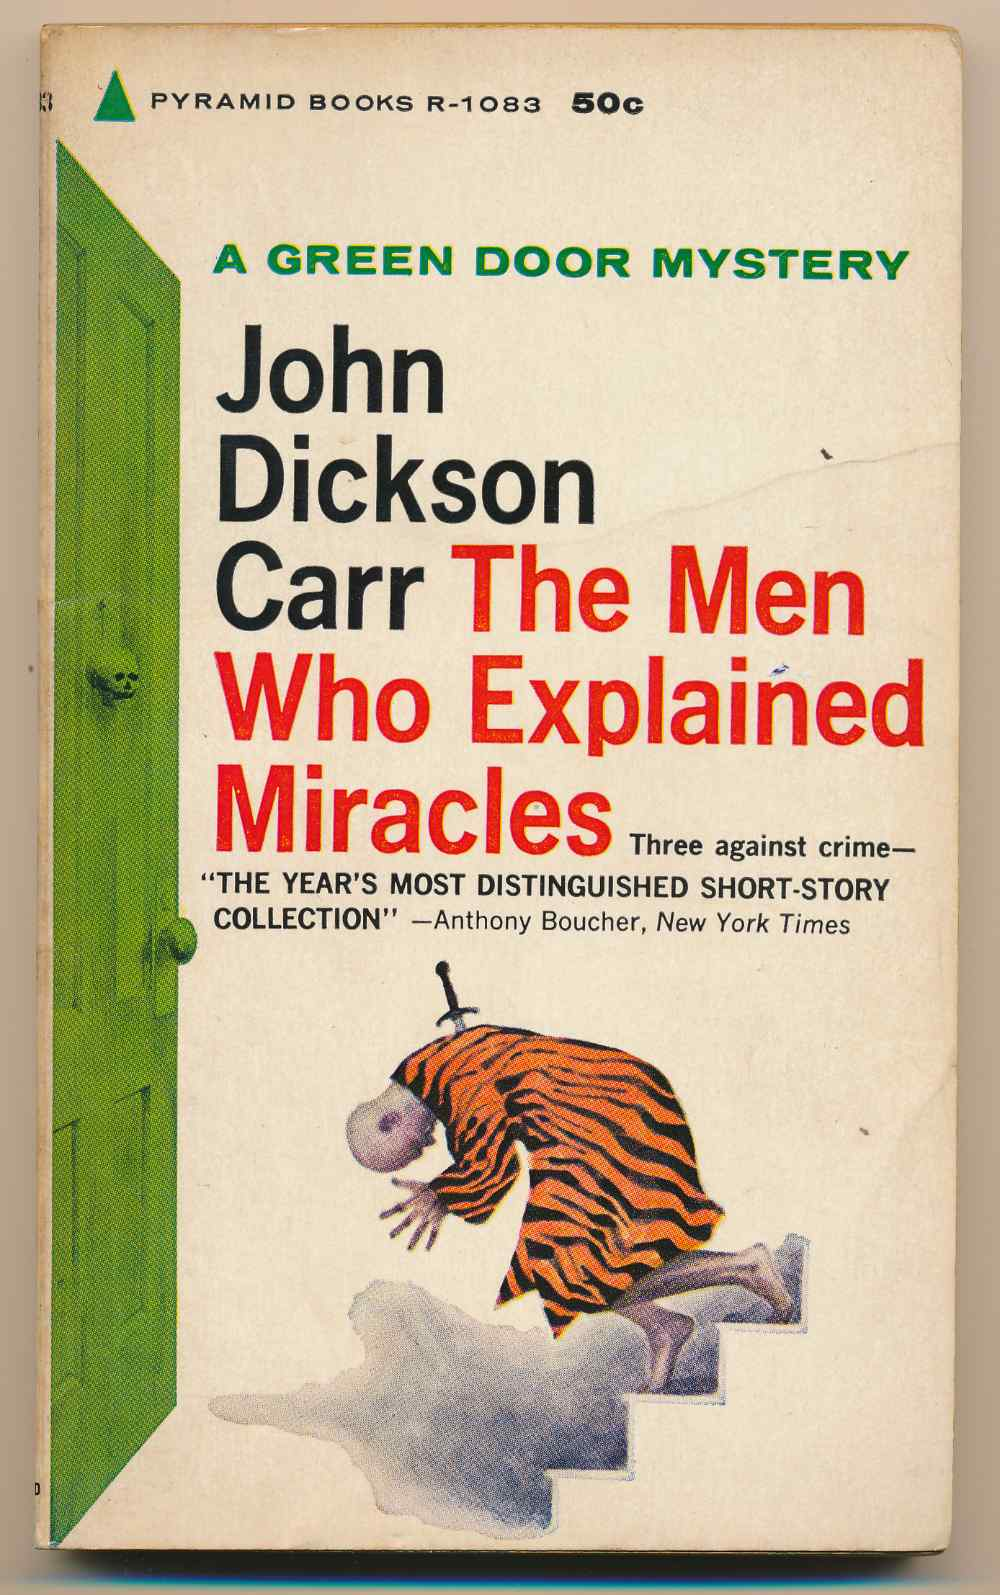 The men who explained miracles : six short stories and a novelette